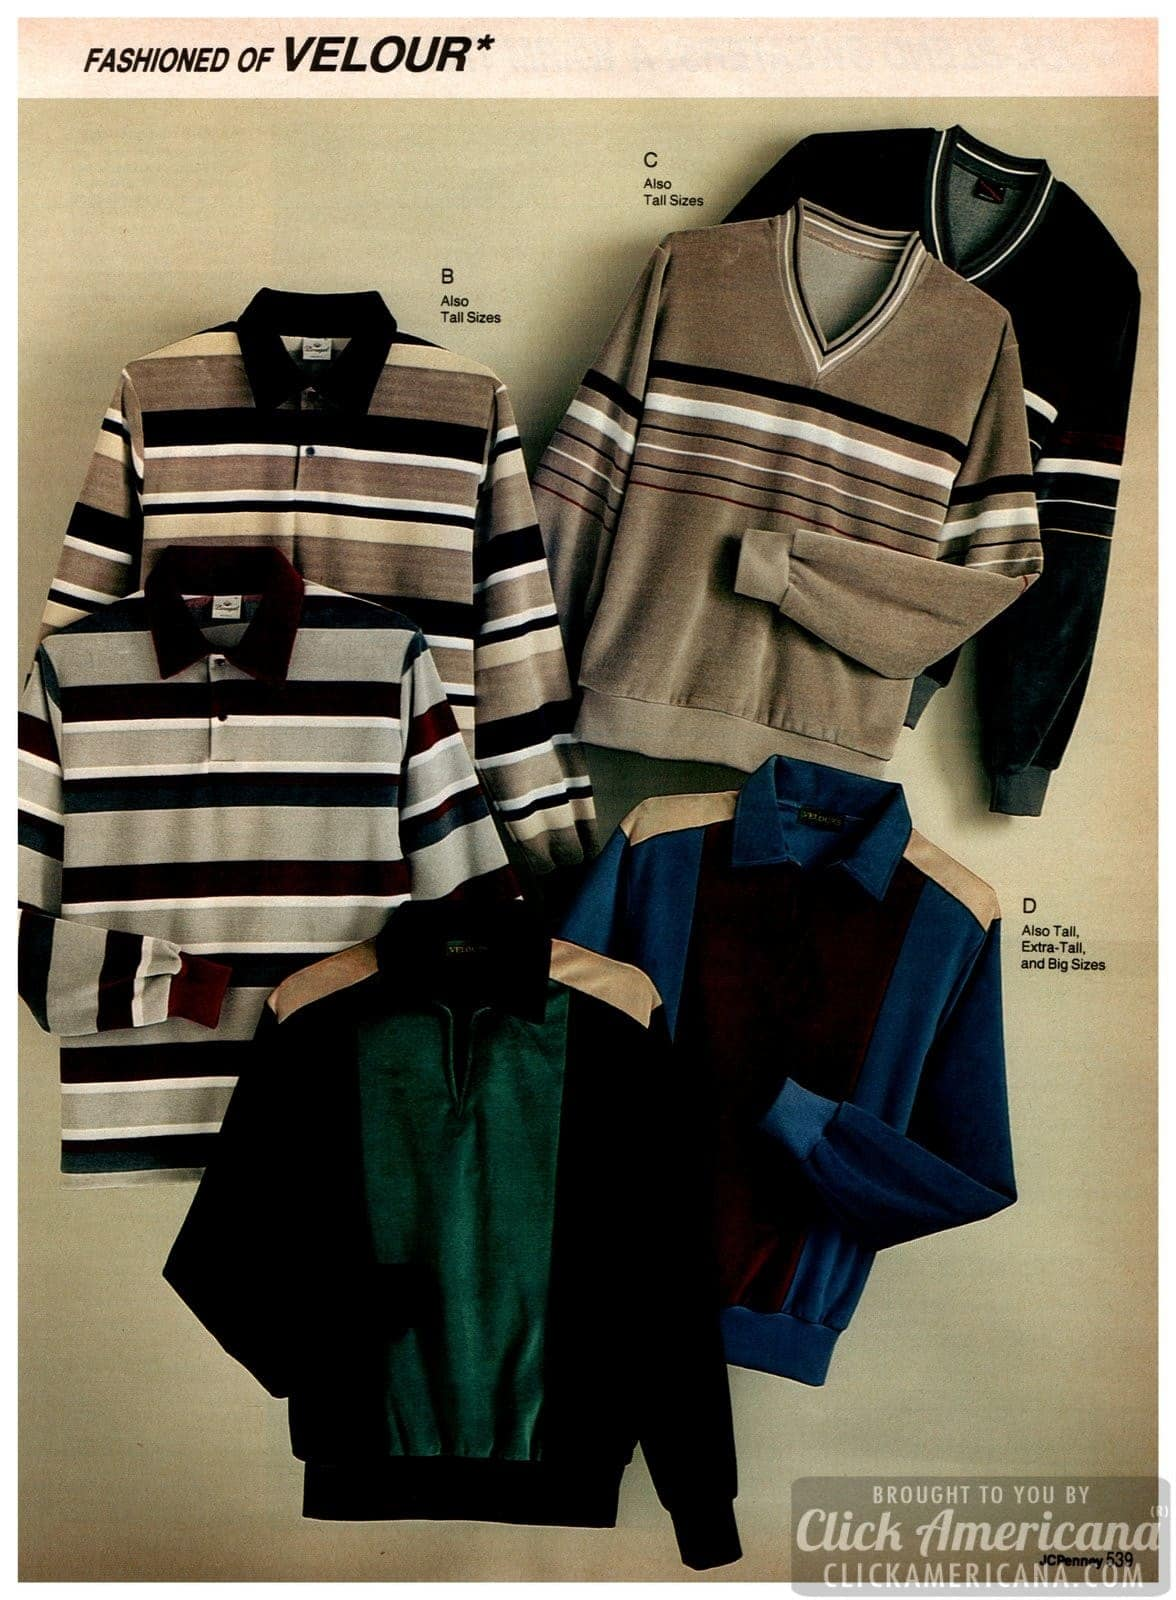 Eighties pullover sweaters and velour jackets for men